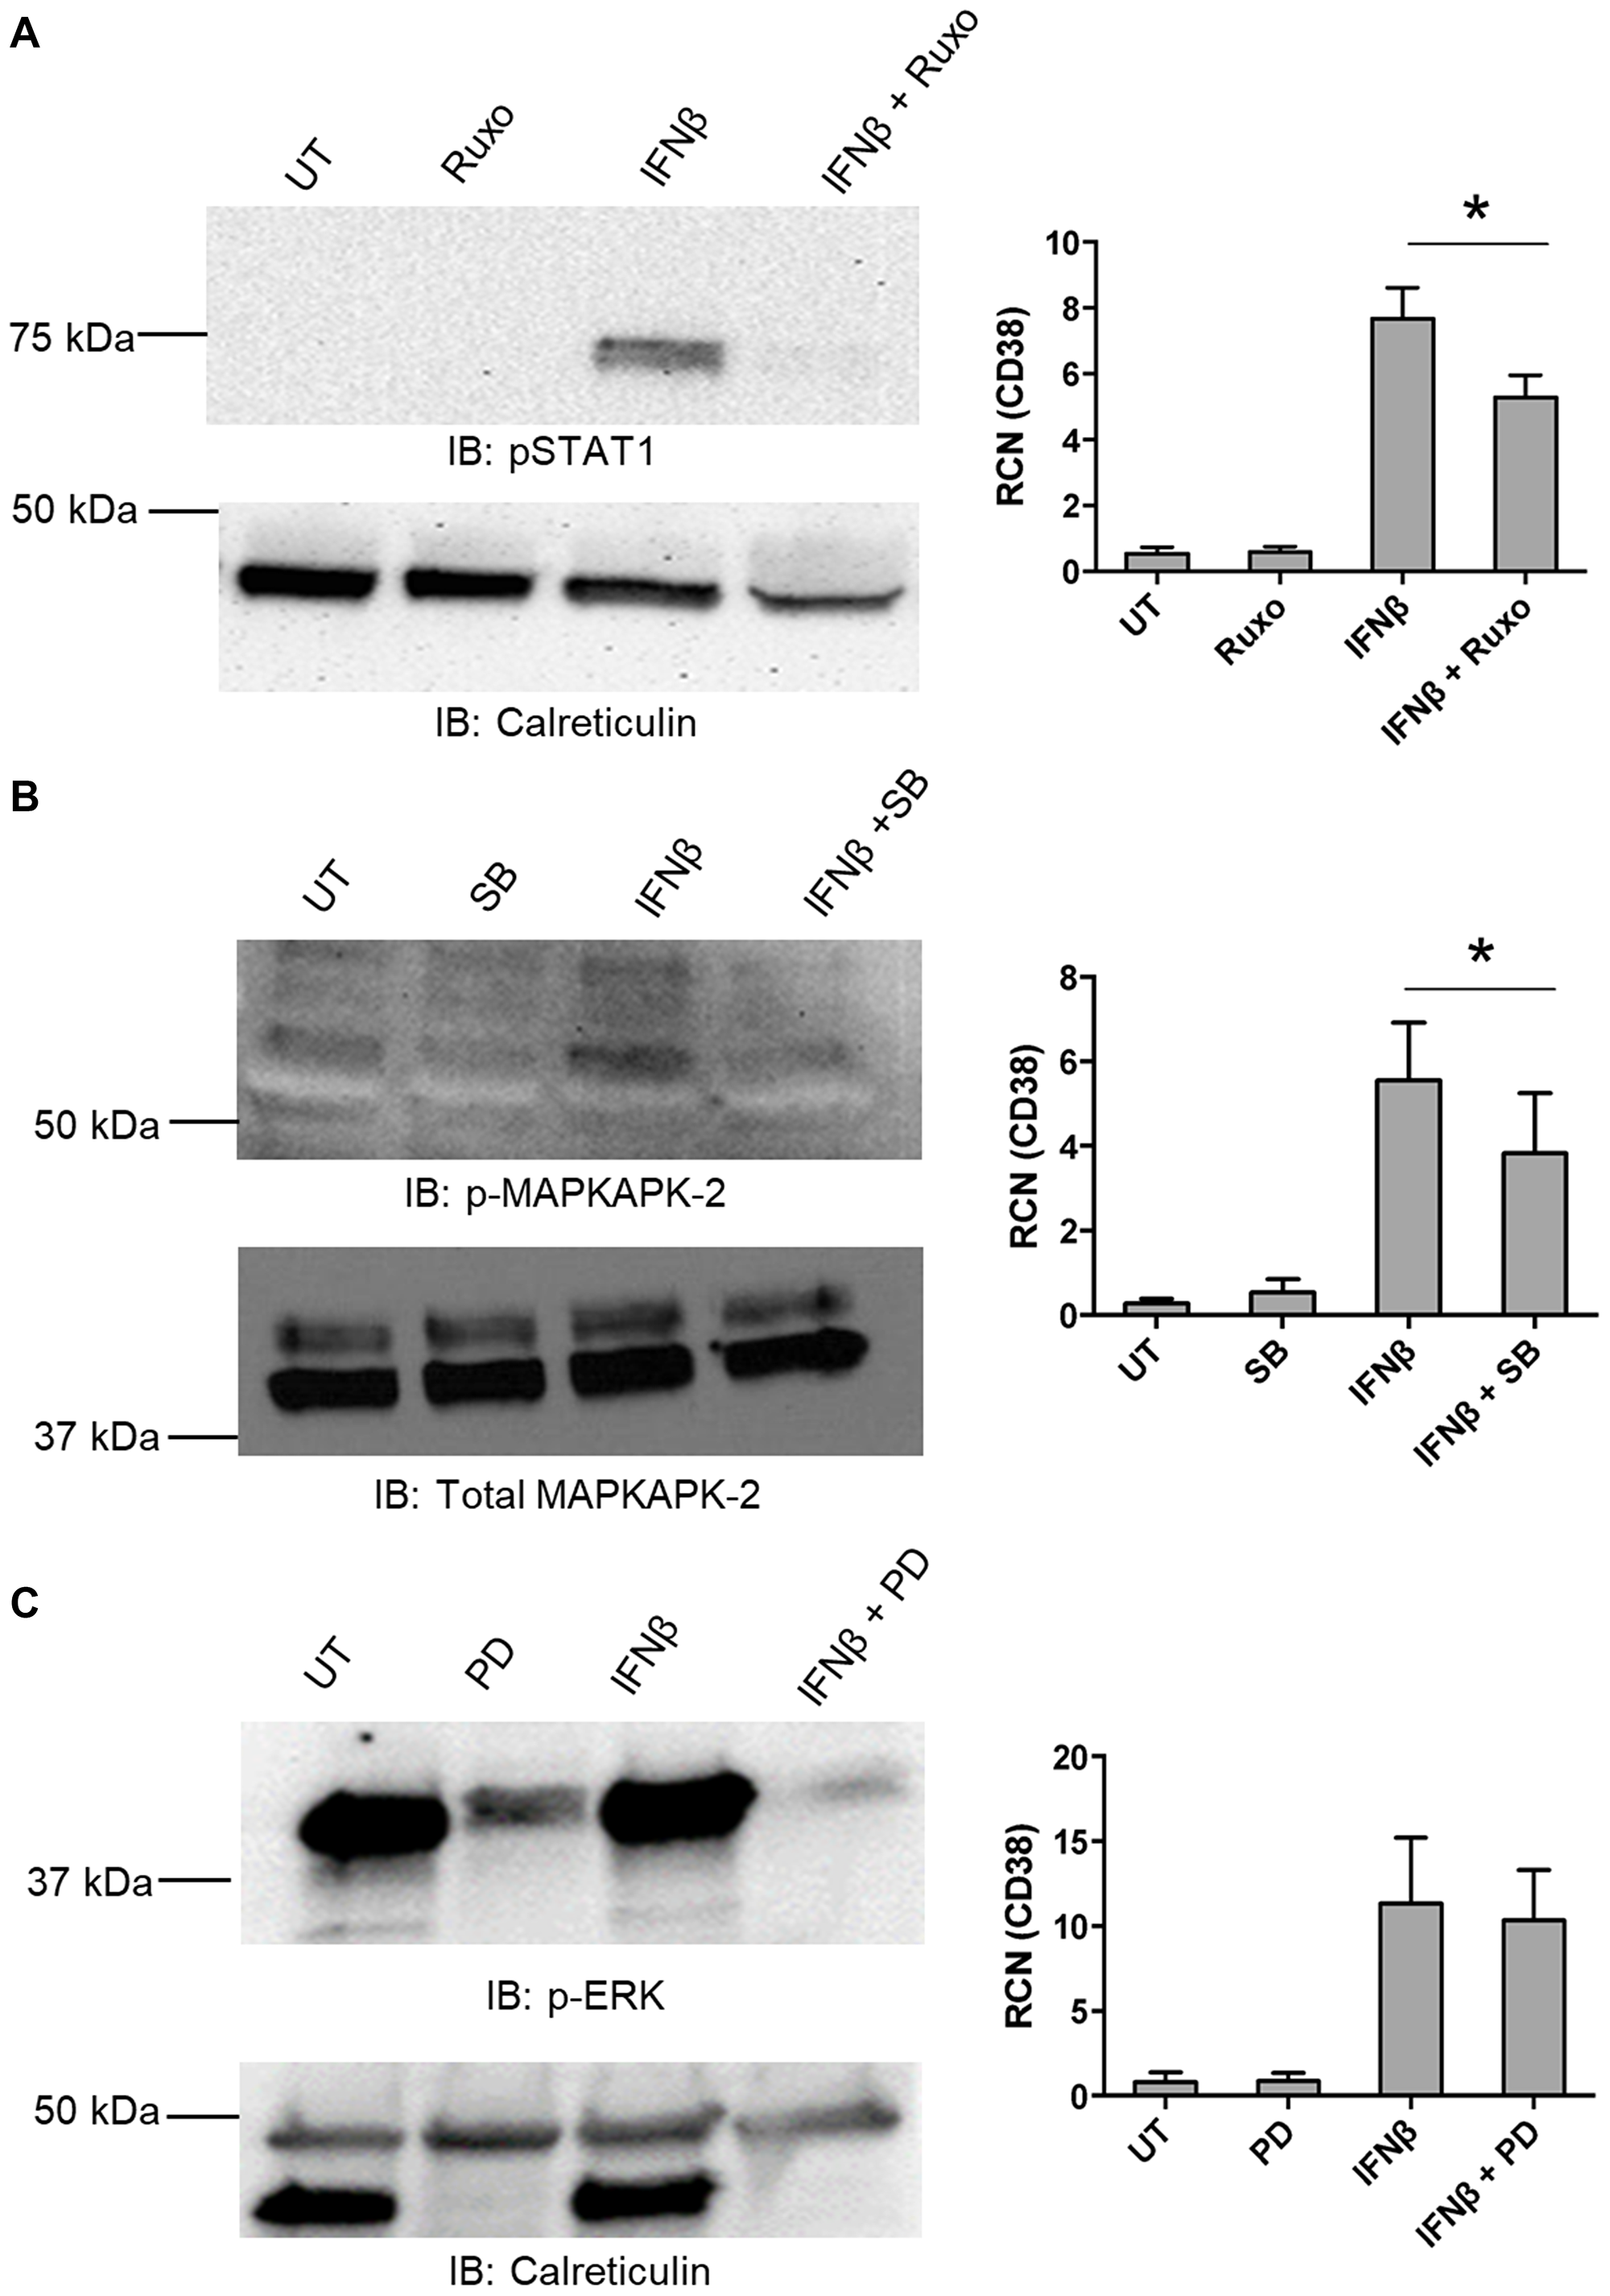 IFNβ-mediated up-regulation of CD38 requires canonical and non-canonical pathways.